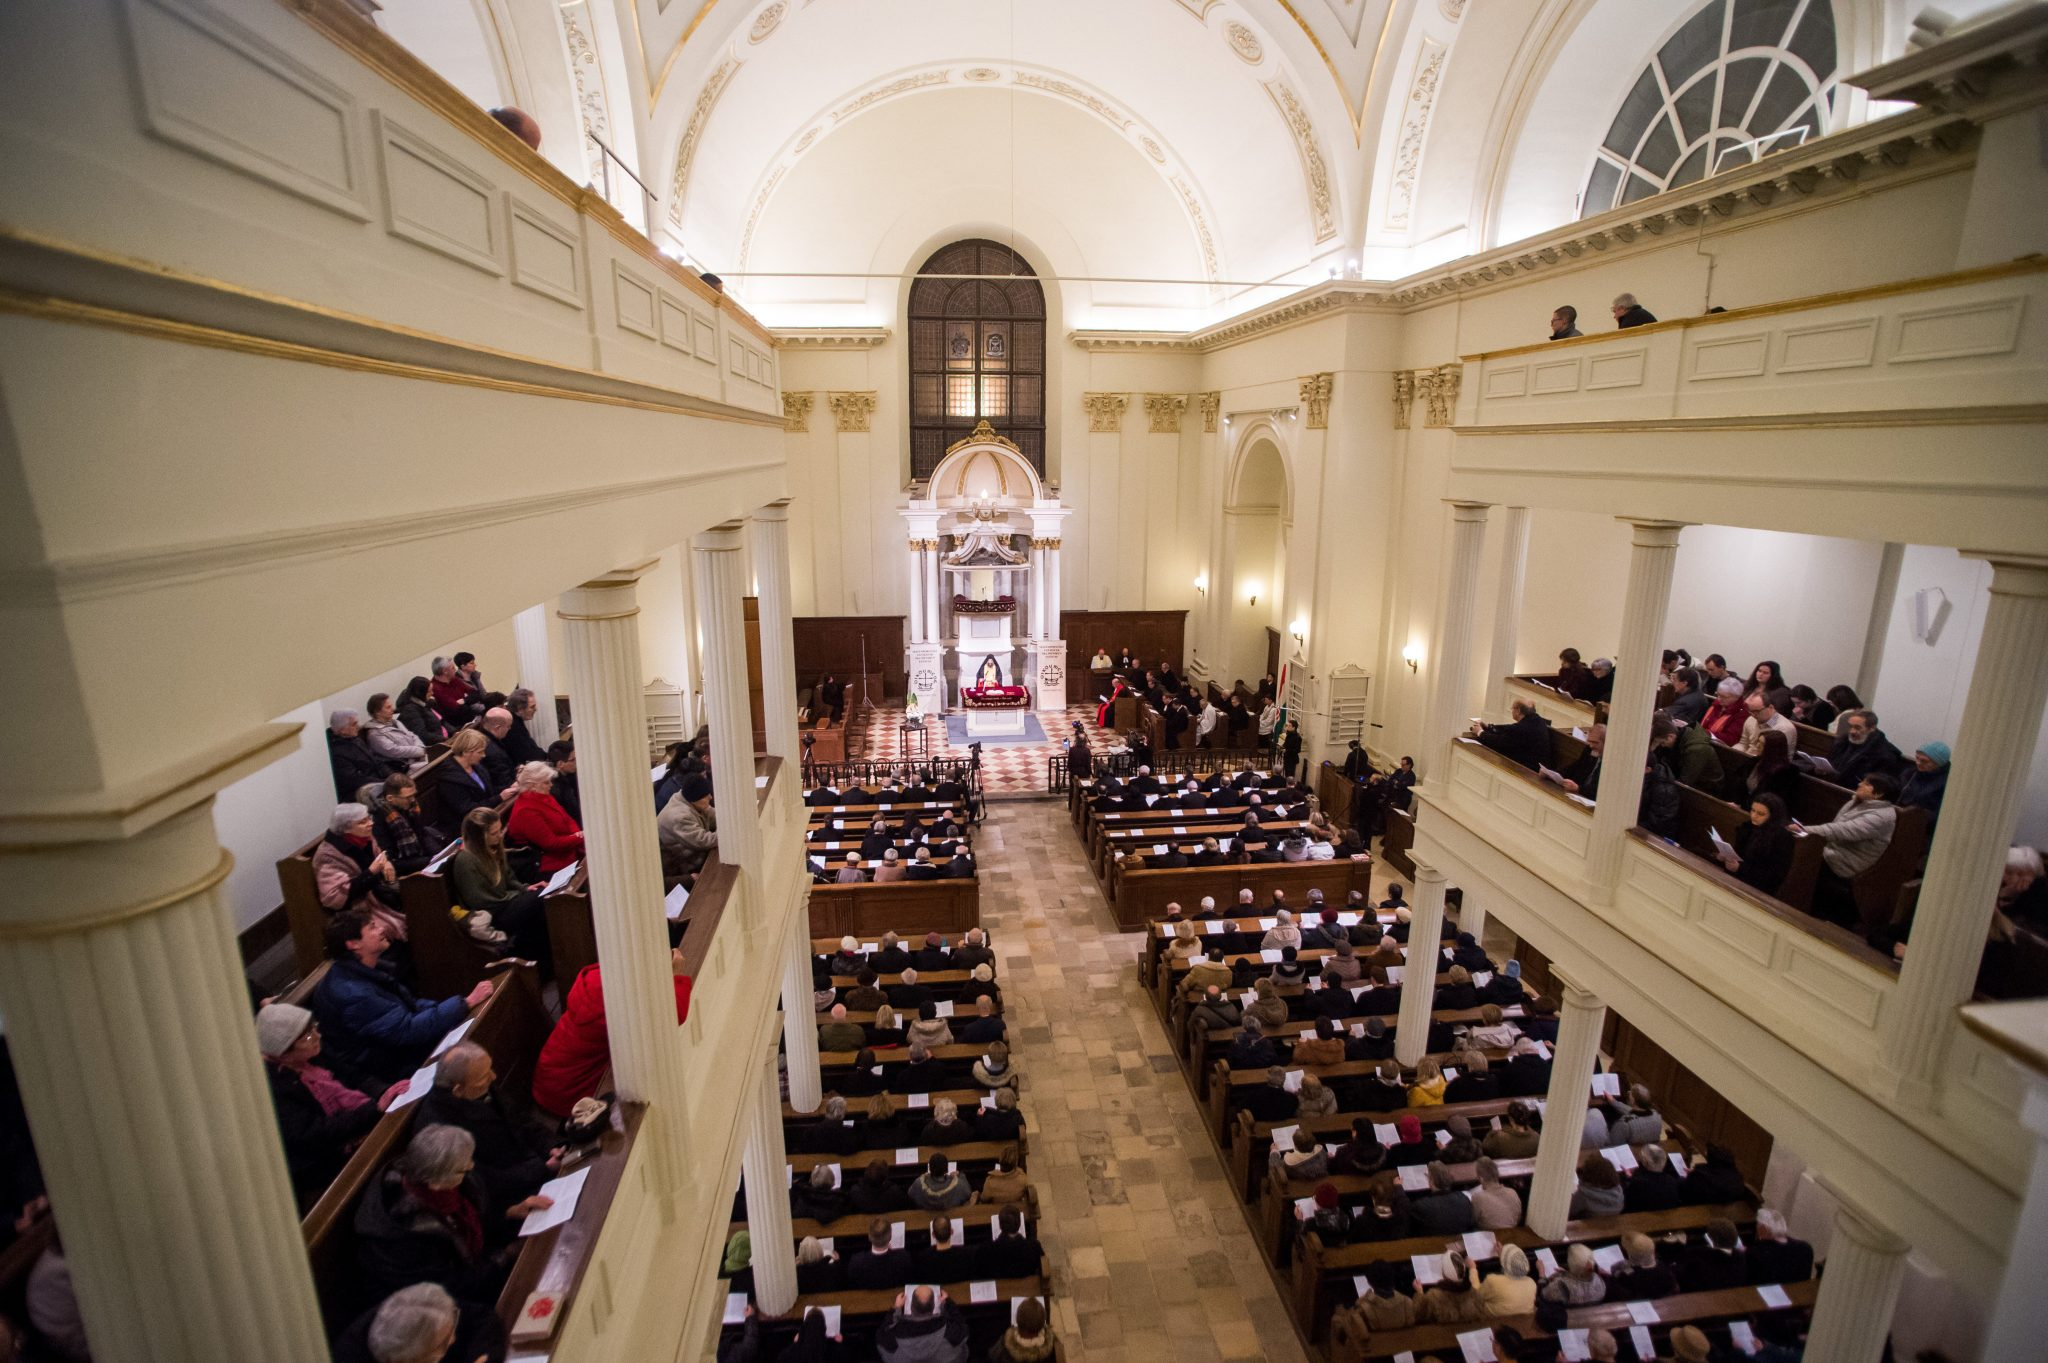 Former Minister Elected Bishop in Historic Reformed Church Vote